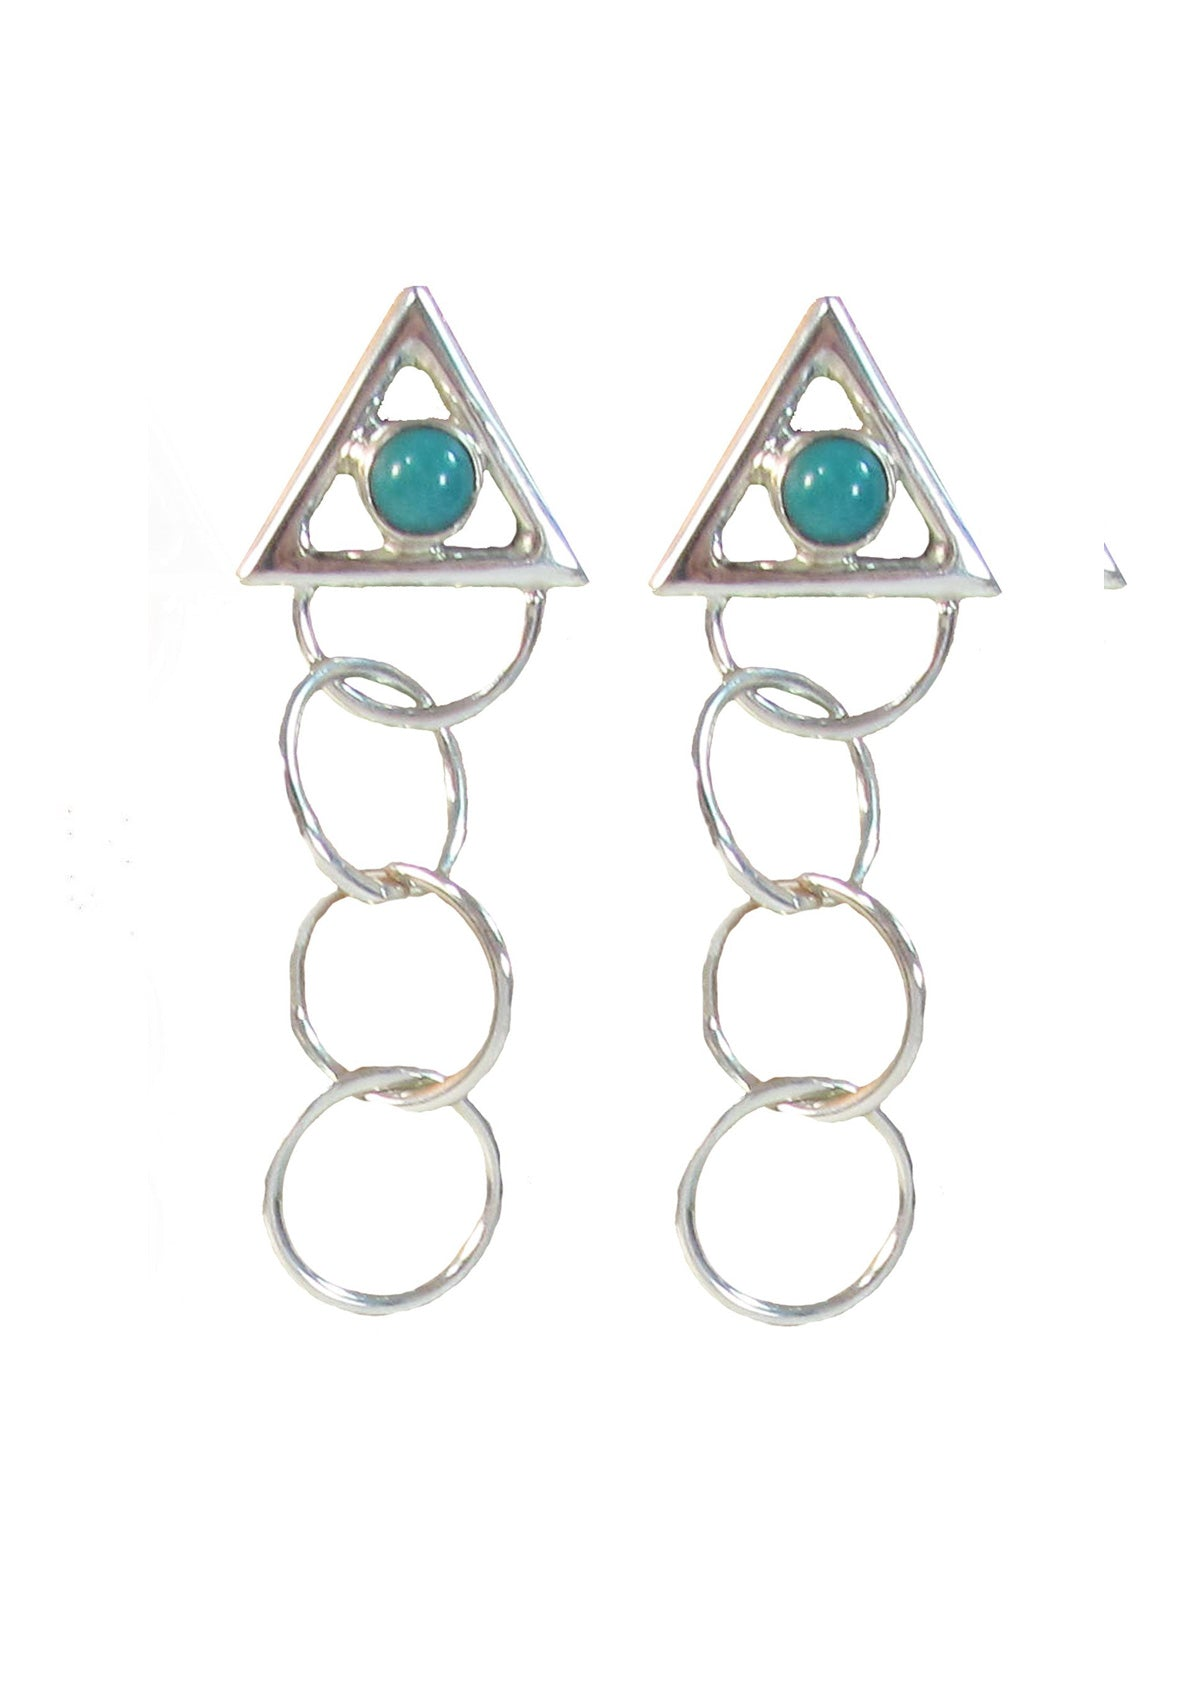 3 ring circles with turquoise earrings